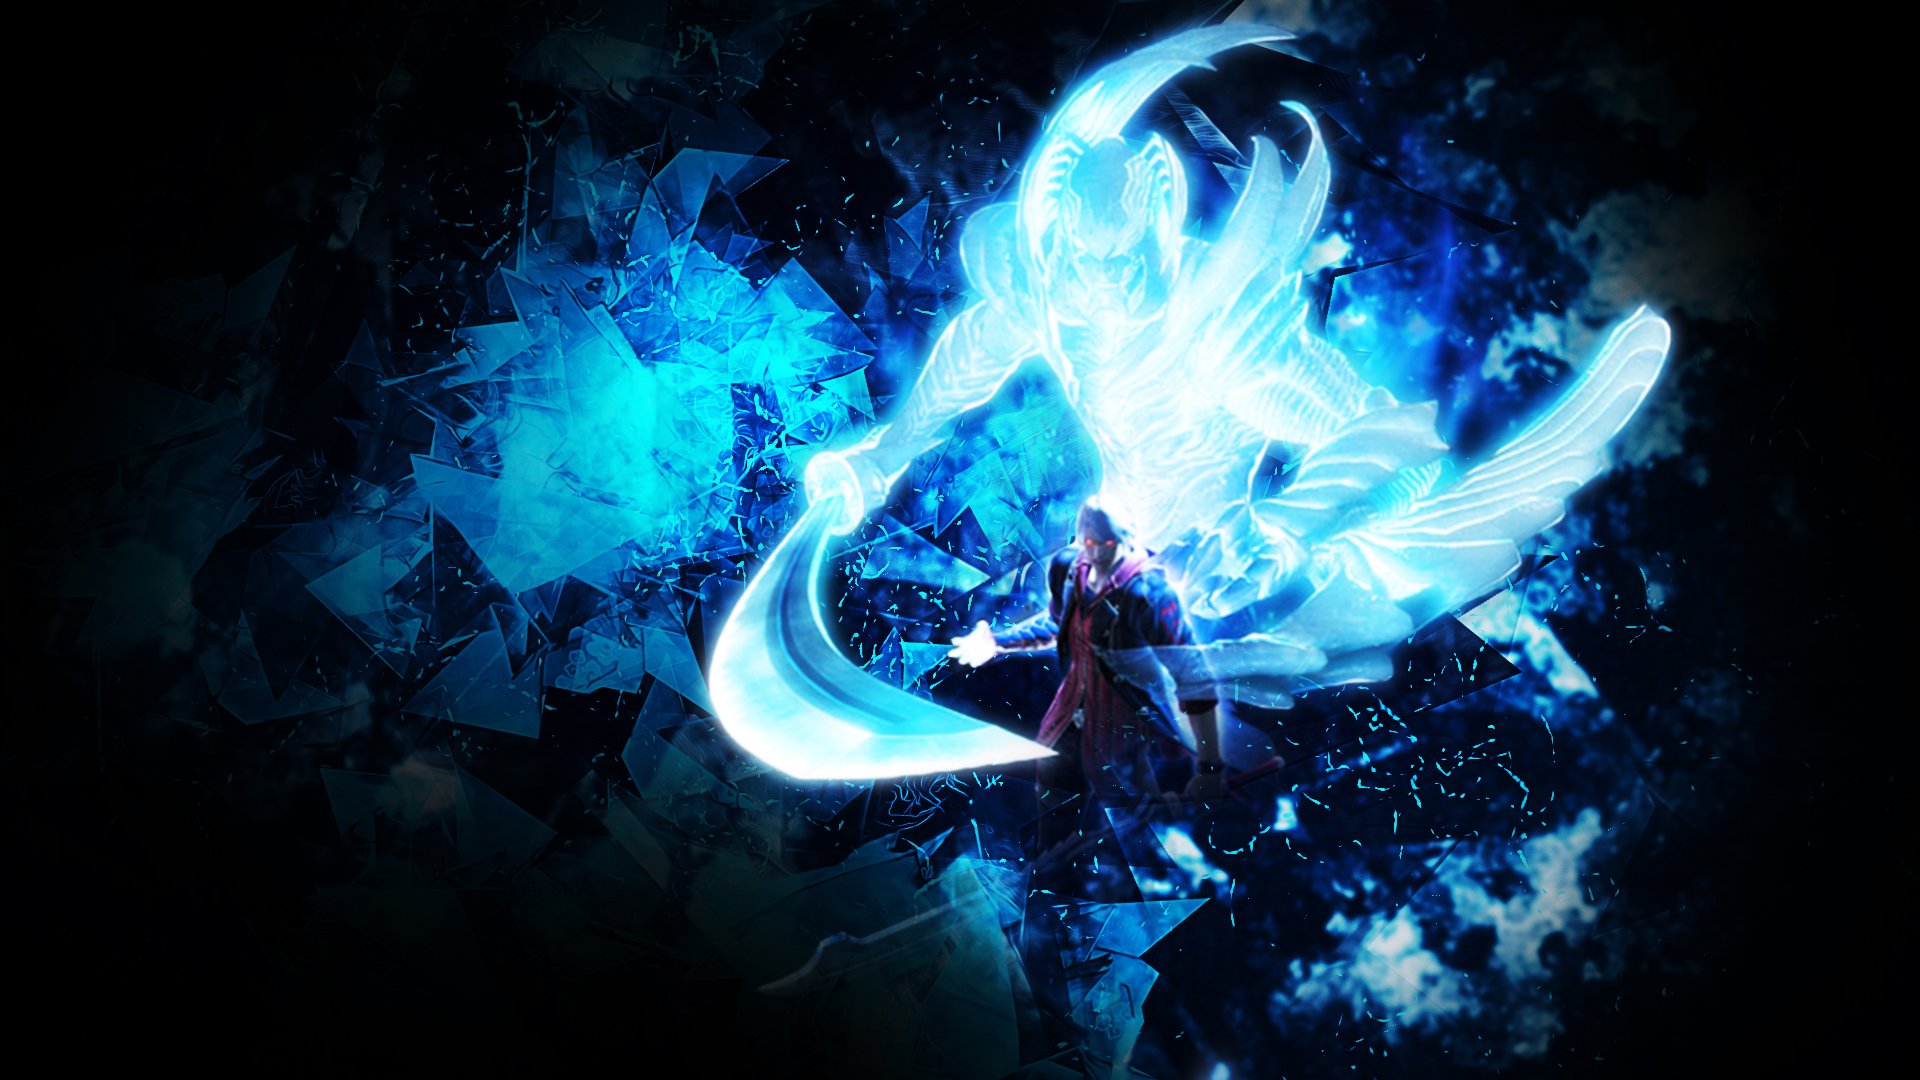 Chica Con Alas De Angel Full Hd En Fondos 1080: Devil May Cry Wallpaper Hd